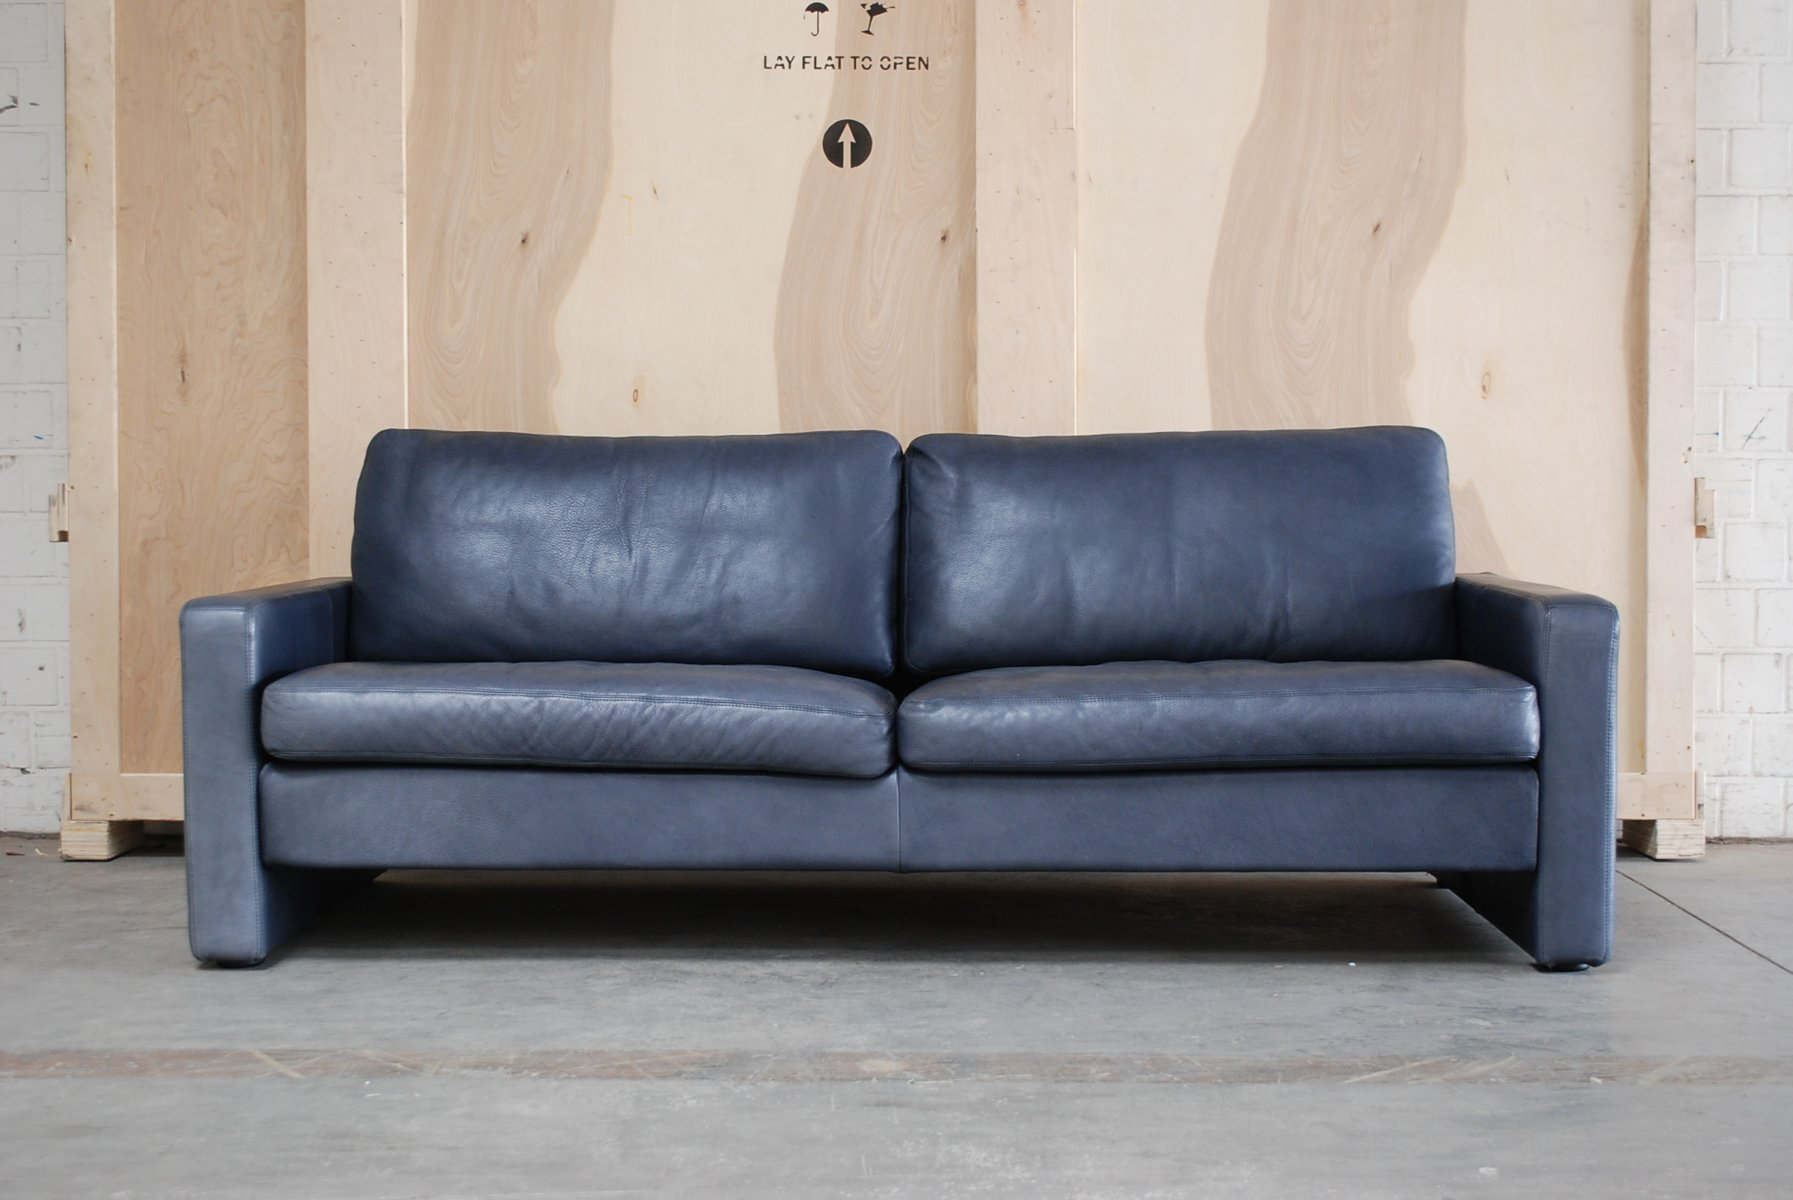 vintage conseta sofa aus blauem leder von cor bei pamono kaufen. Black Bedroom Furniture Sets. Home Design Ideas